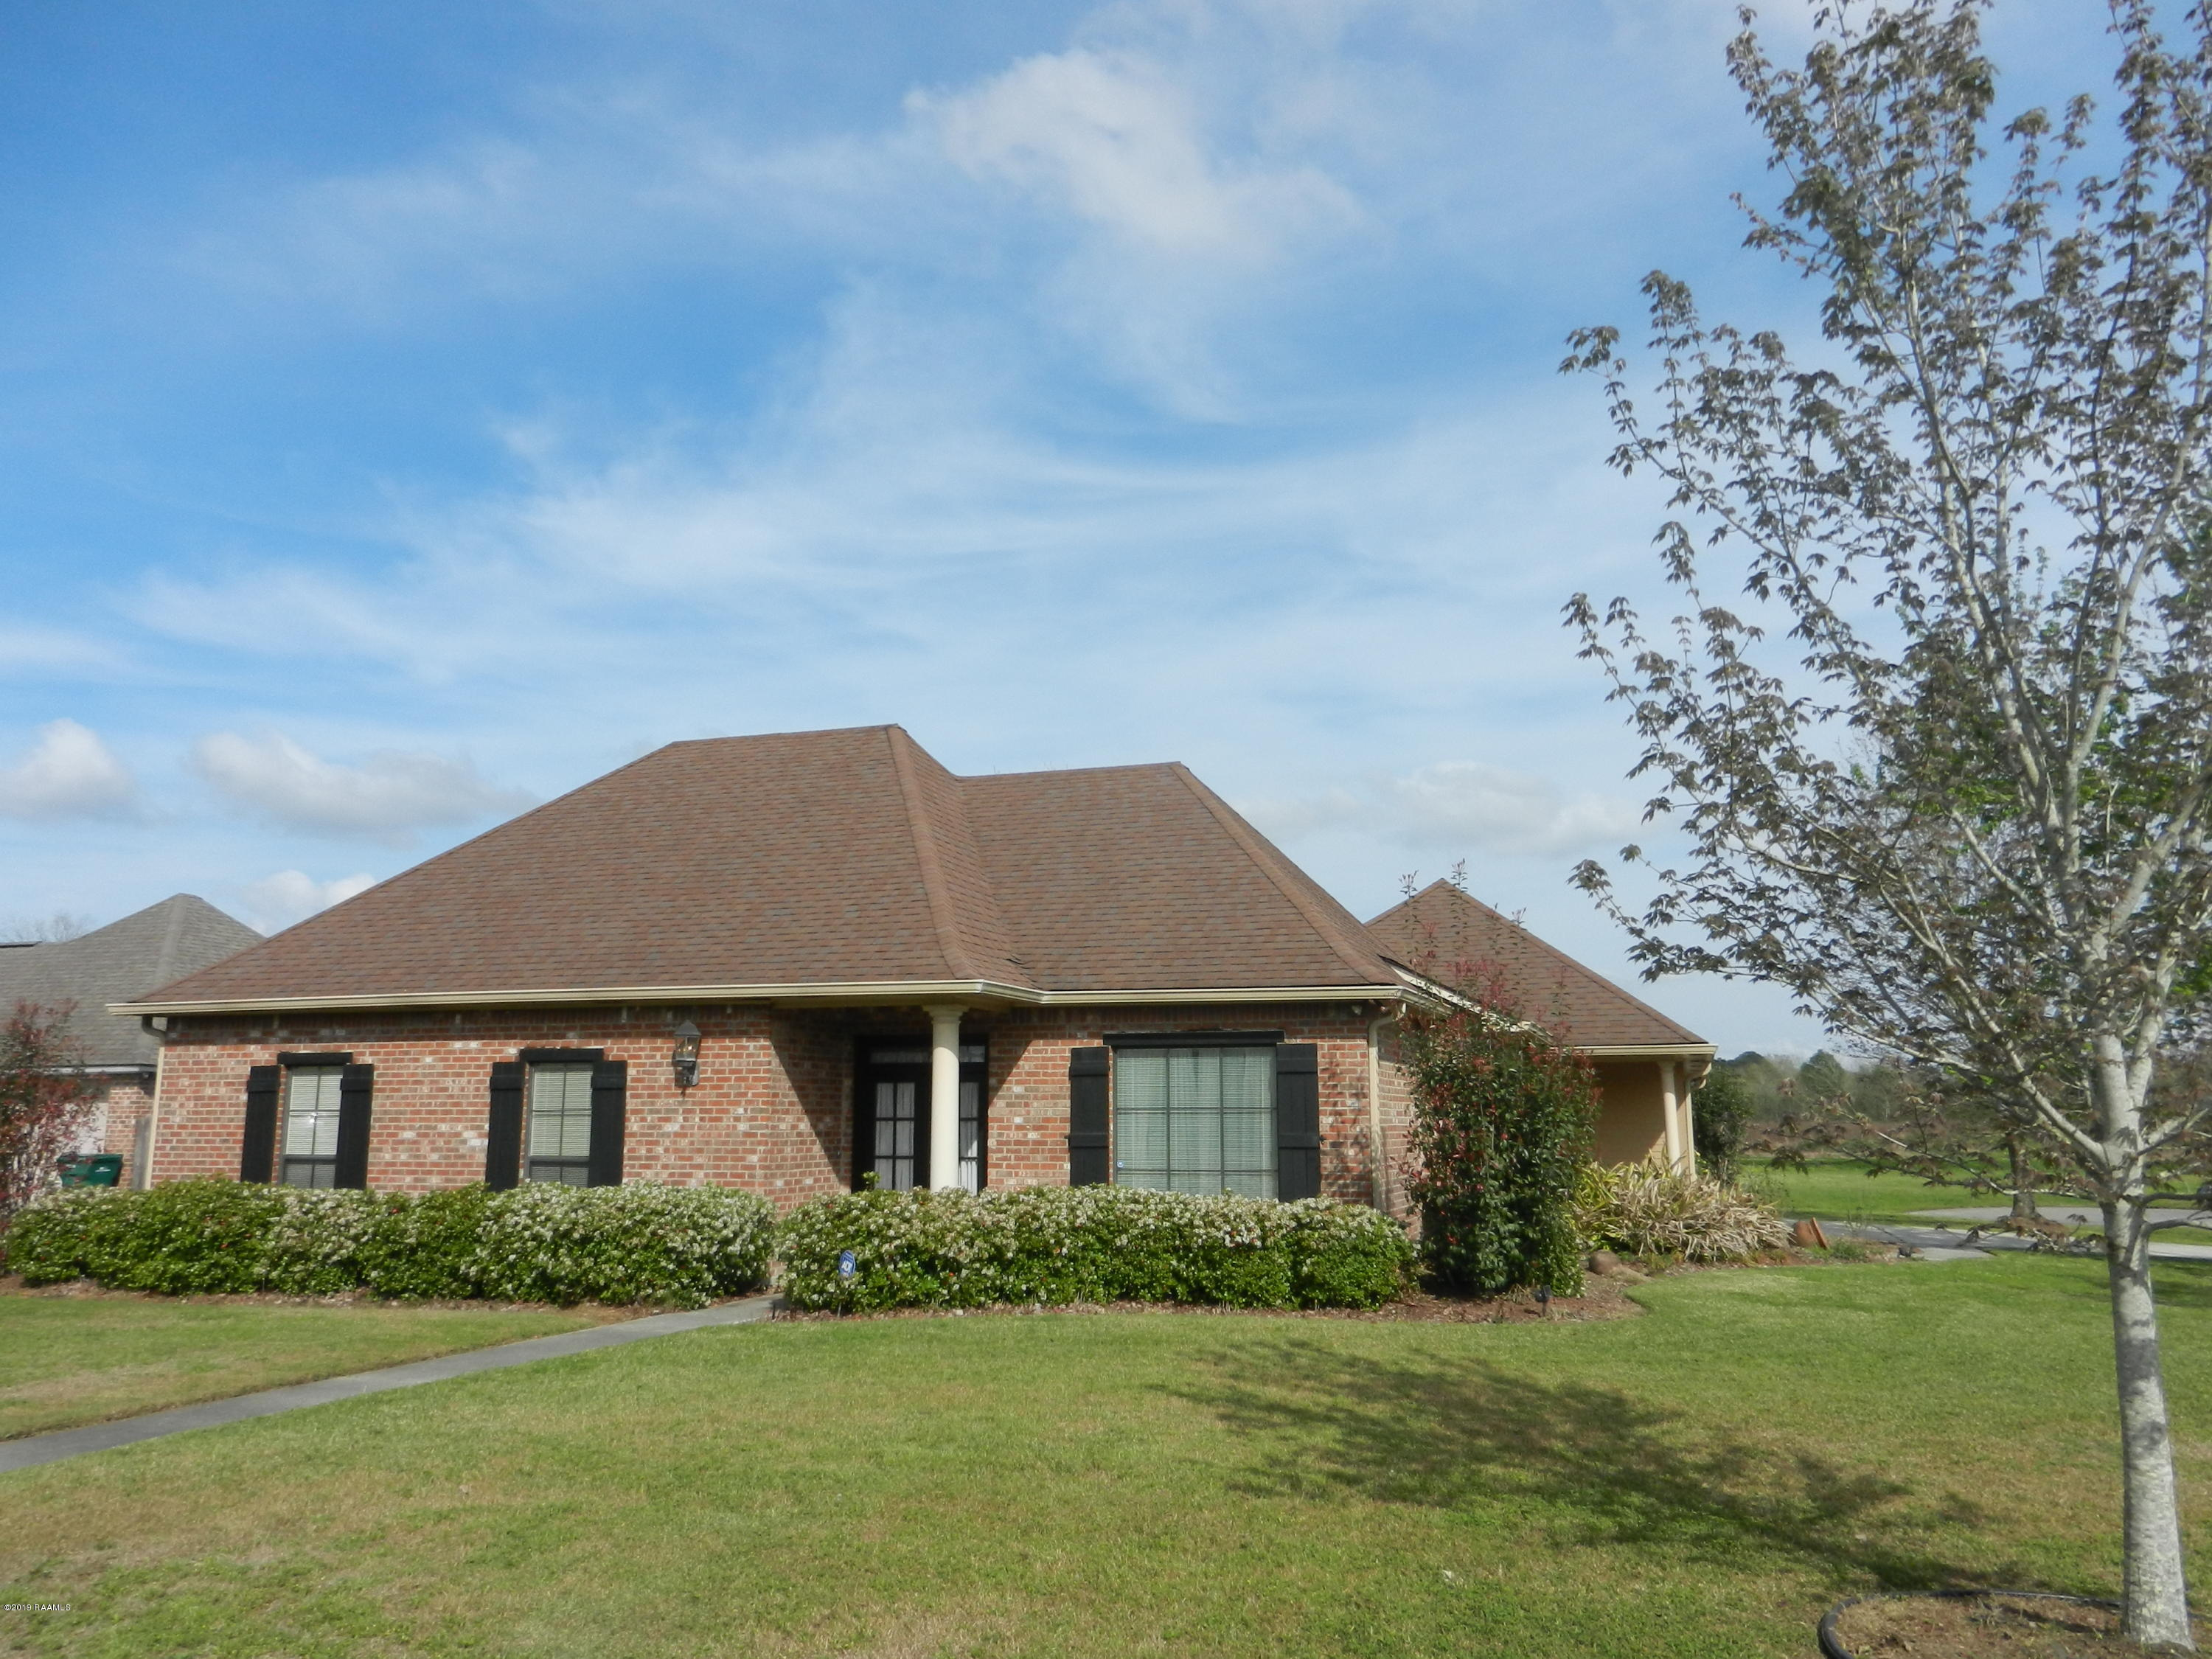 100 Hanna Drive, Youngsville, LA 70592 Photo #32